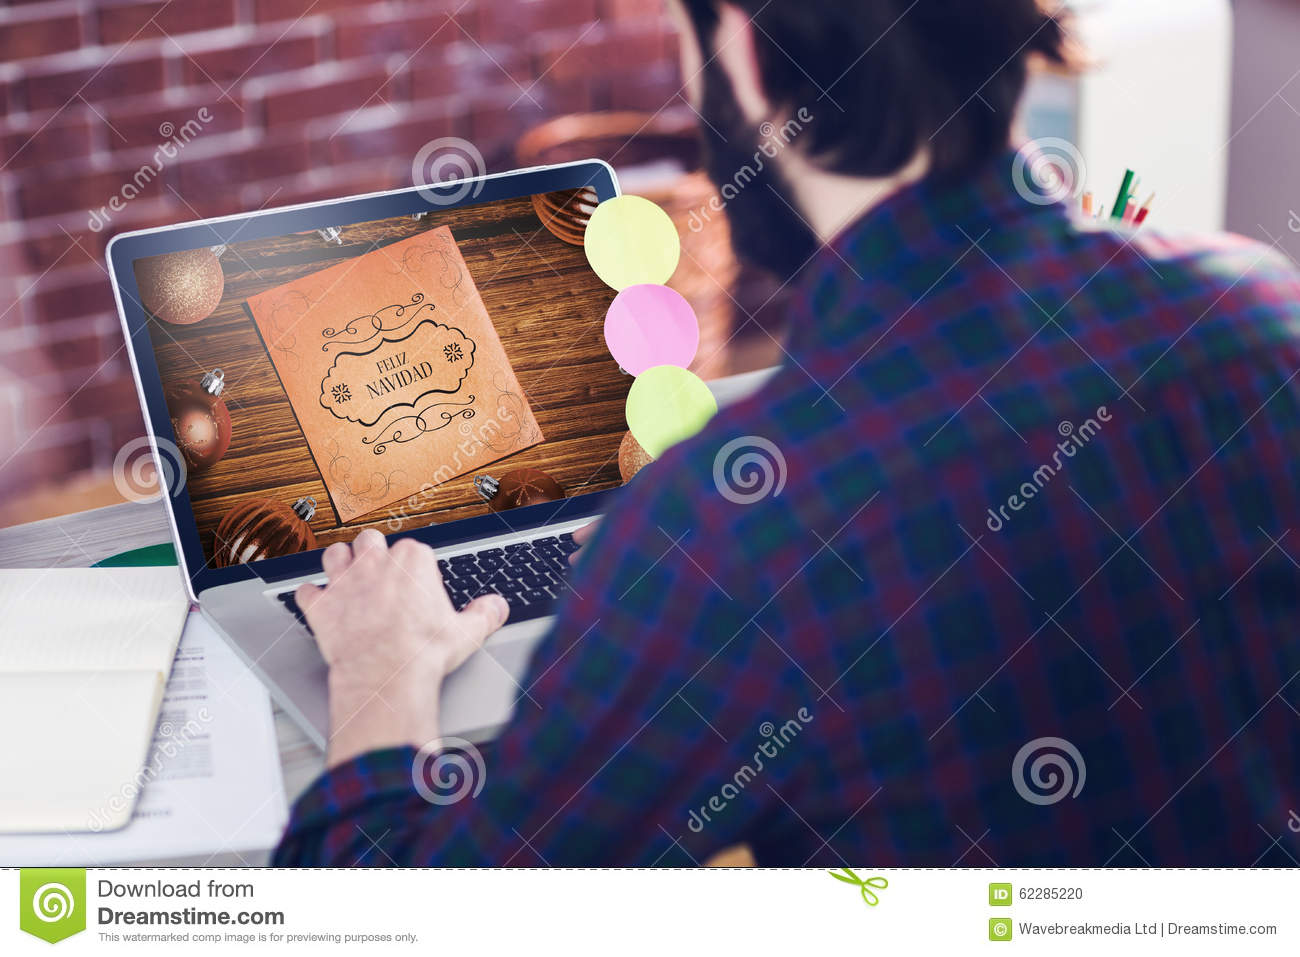 Composite Image Of Web Course Ad Stock Photo - Image: 62285220